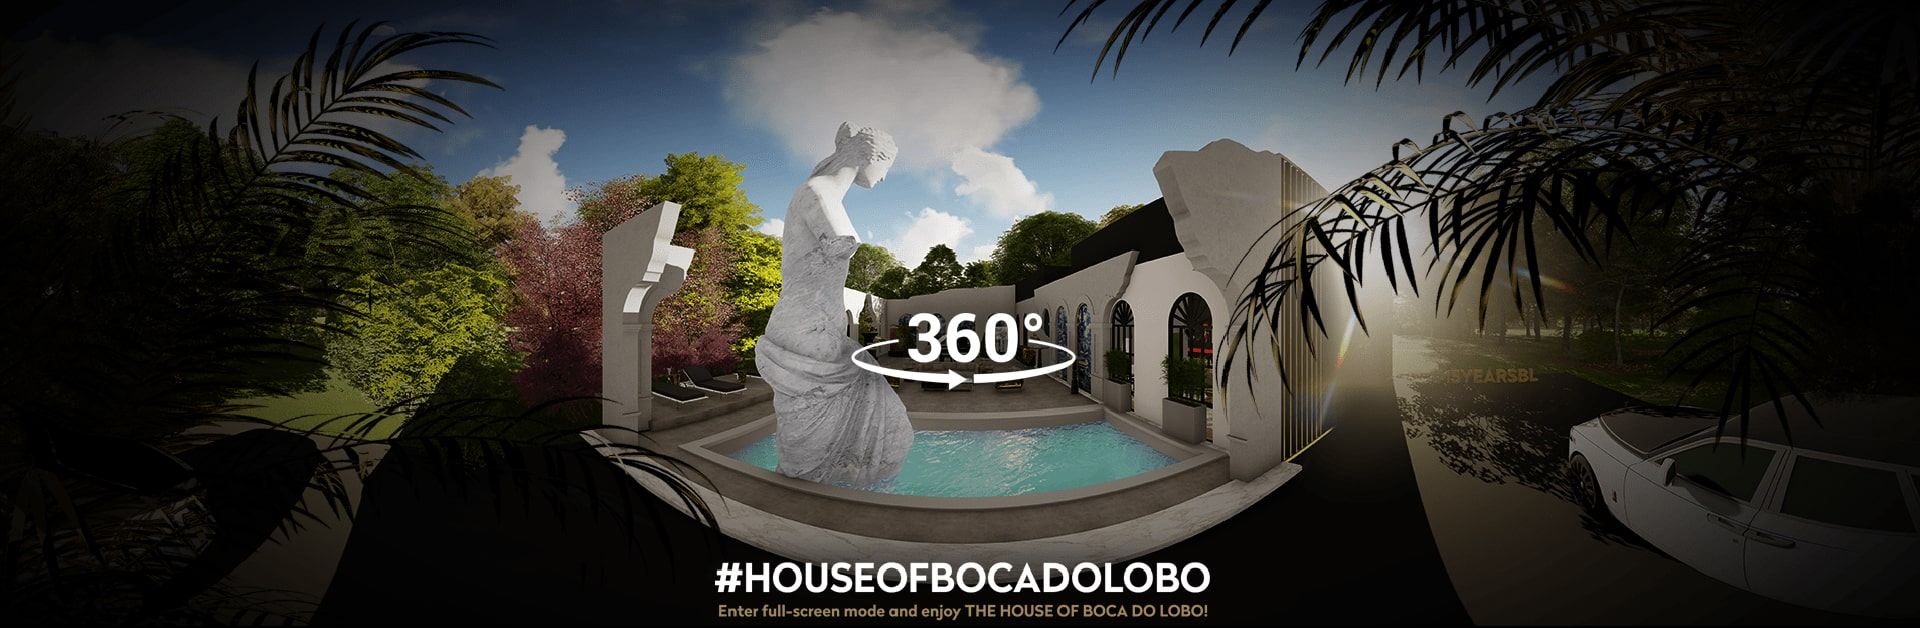 #HOUSEOFBOCADOLOBO - Enter full-screen mode and enjoy THE HOUSE OF BOCA DO LOBO!